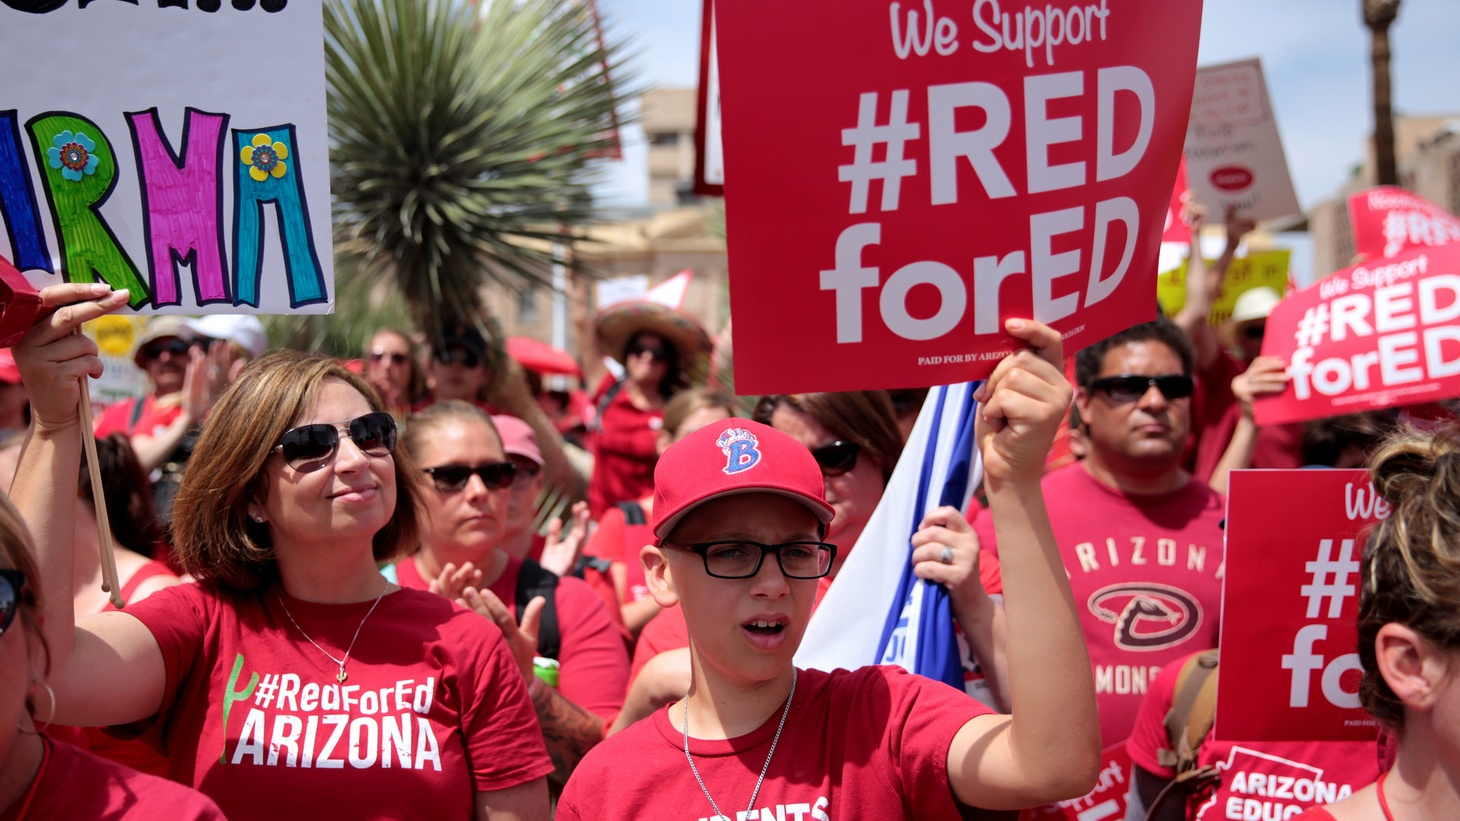 Teachers are mad as hell in several red states. They're walking out over cuts in pay and reductions in classroom support. It's a grass-roots rebellion from West Virginia to Kentucky and Arizona.